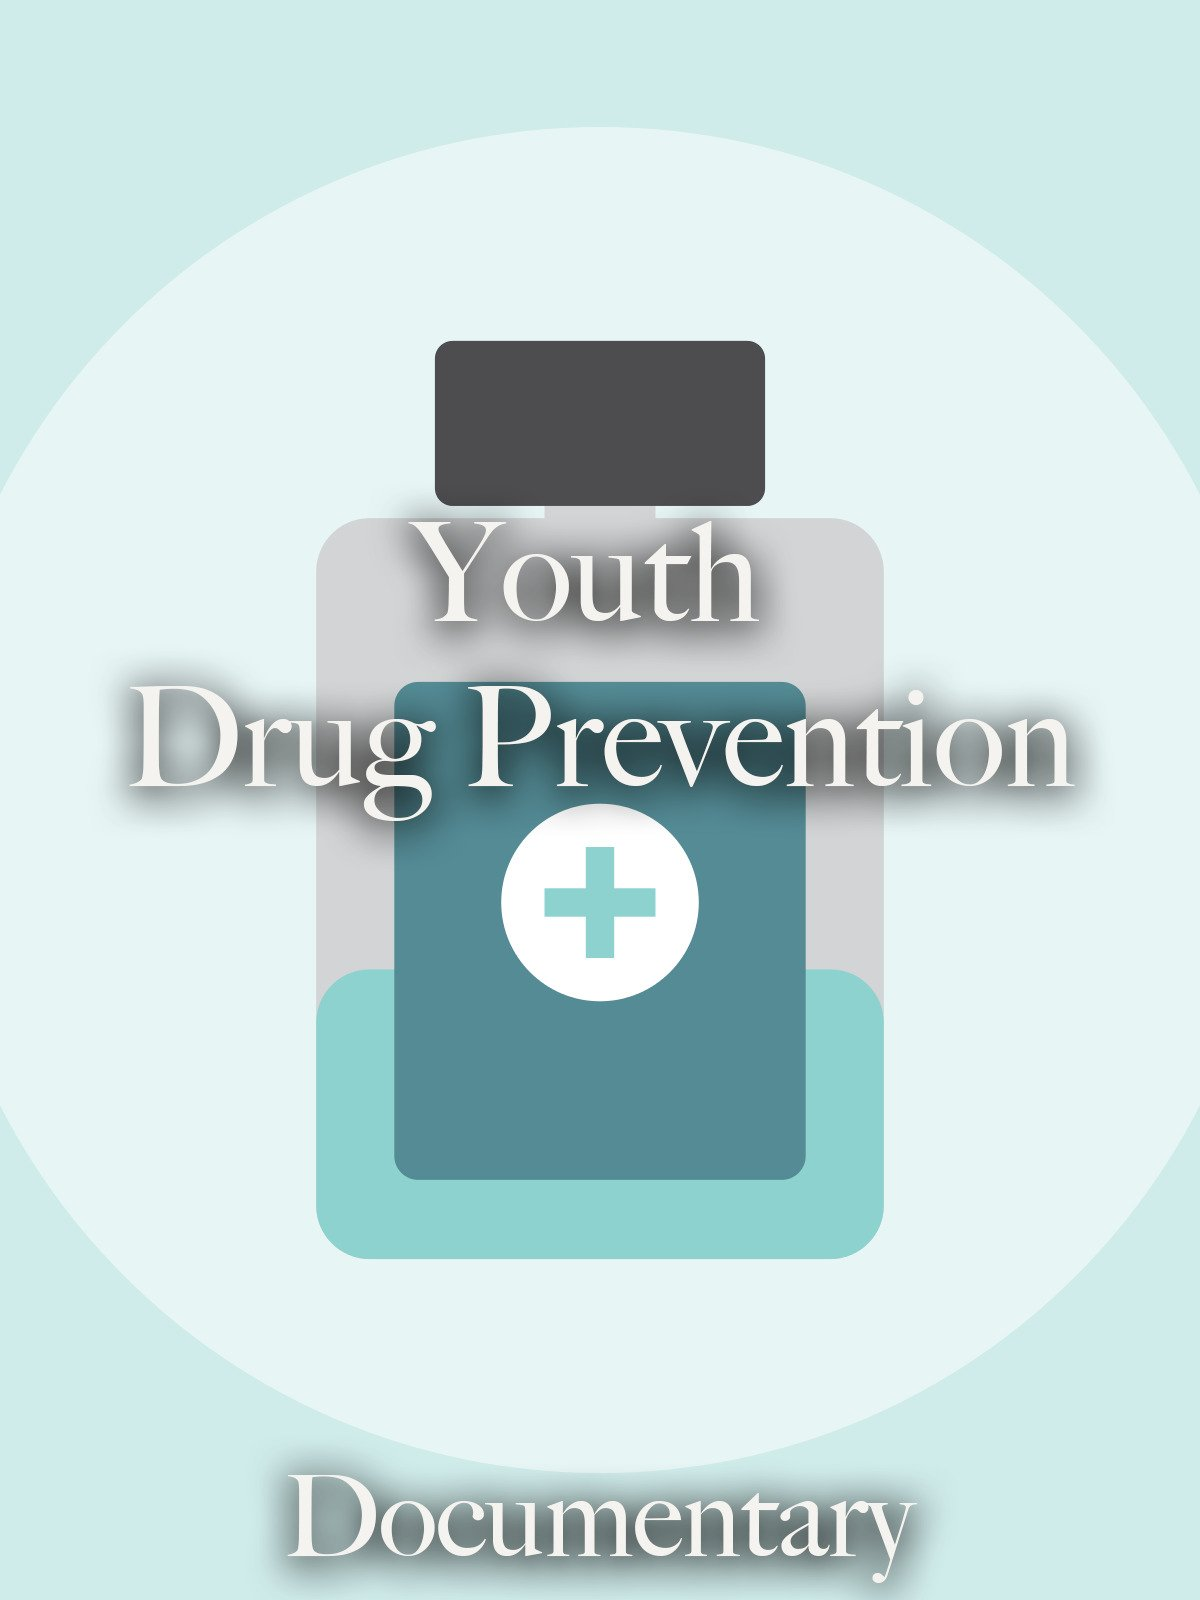 Youth Drug Prevention Documentary